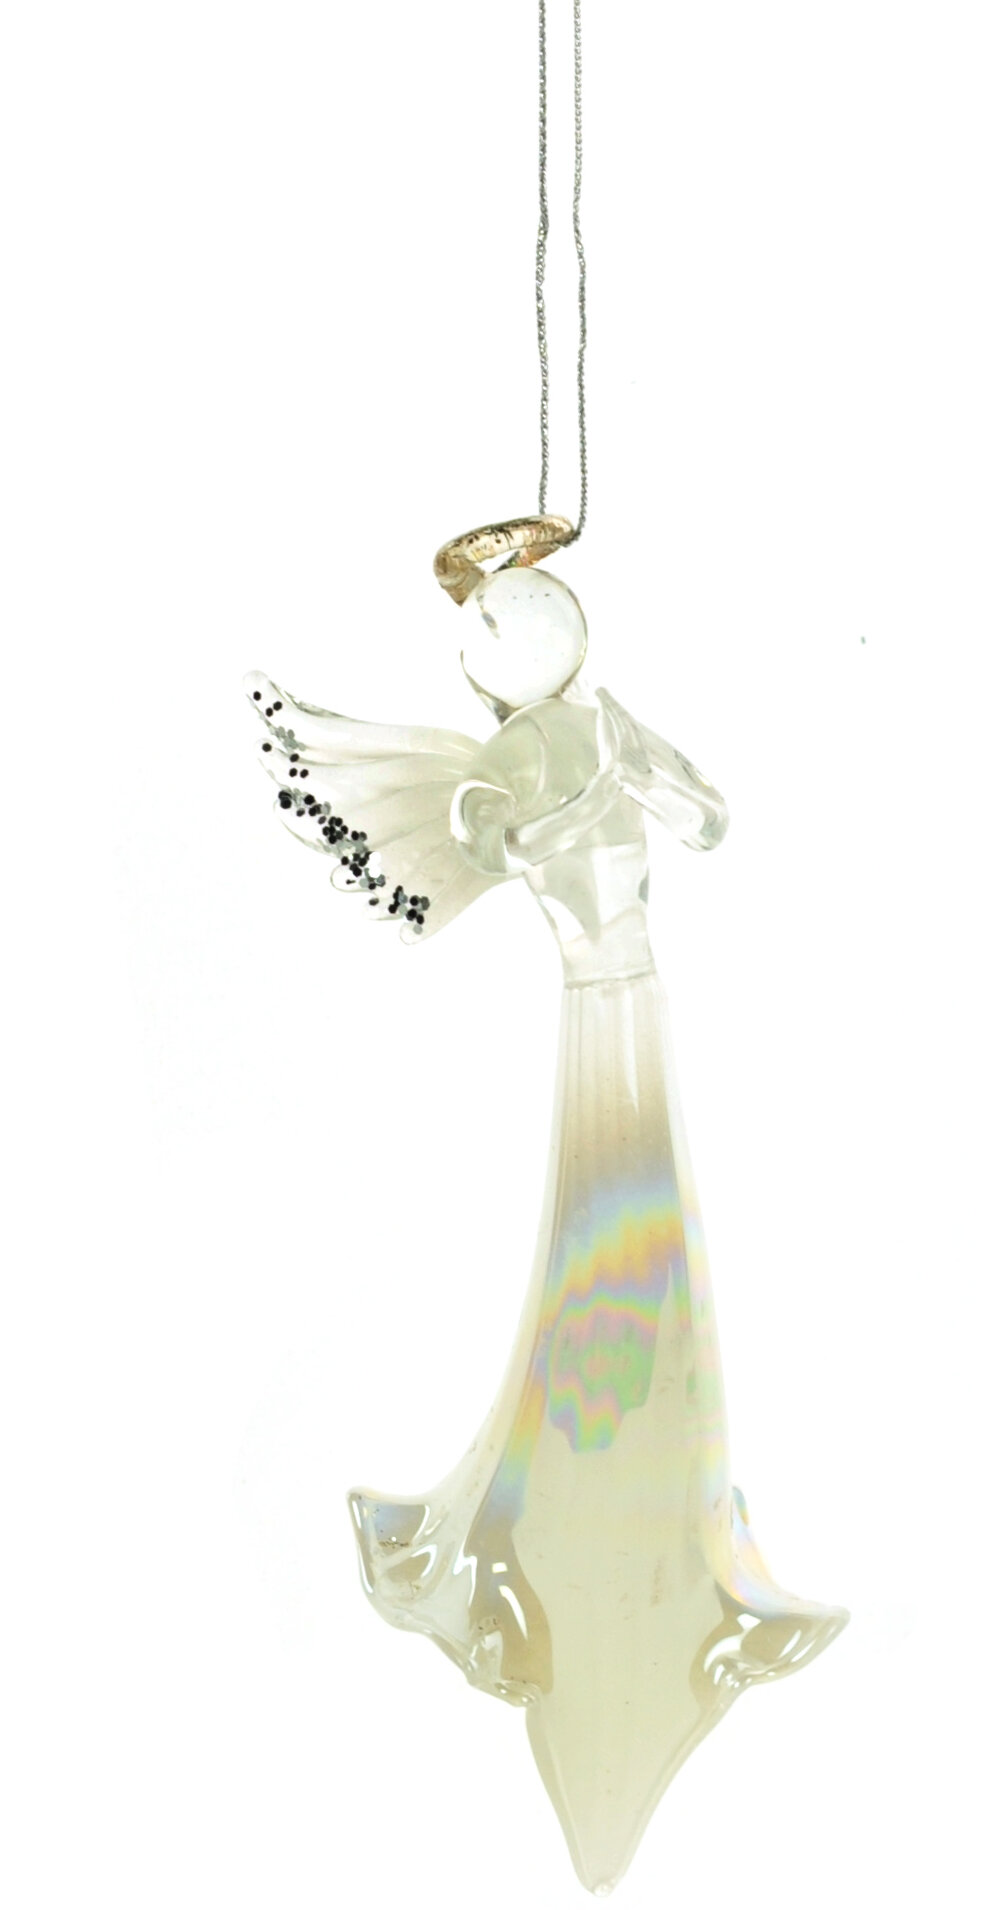 The Holiday Aisle Glass Praying Angel Hanging Figurine Ornament Wayfair